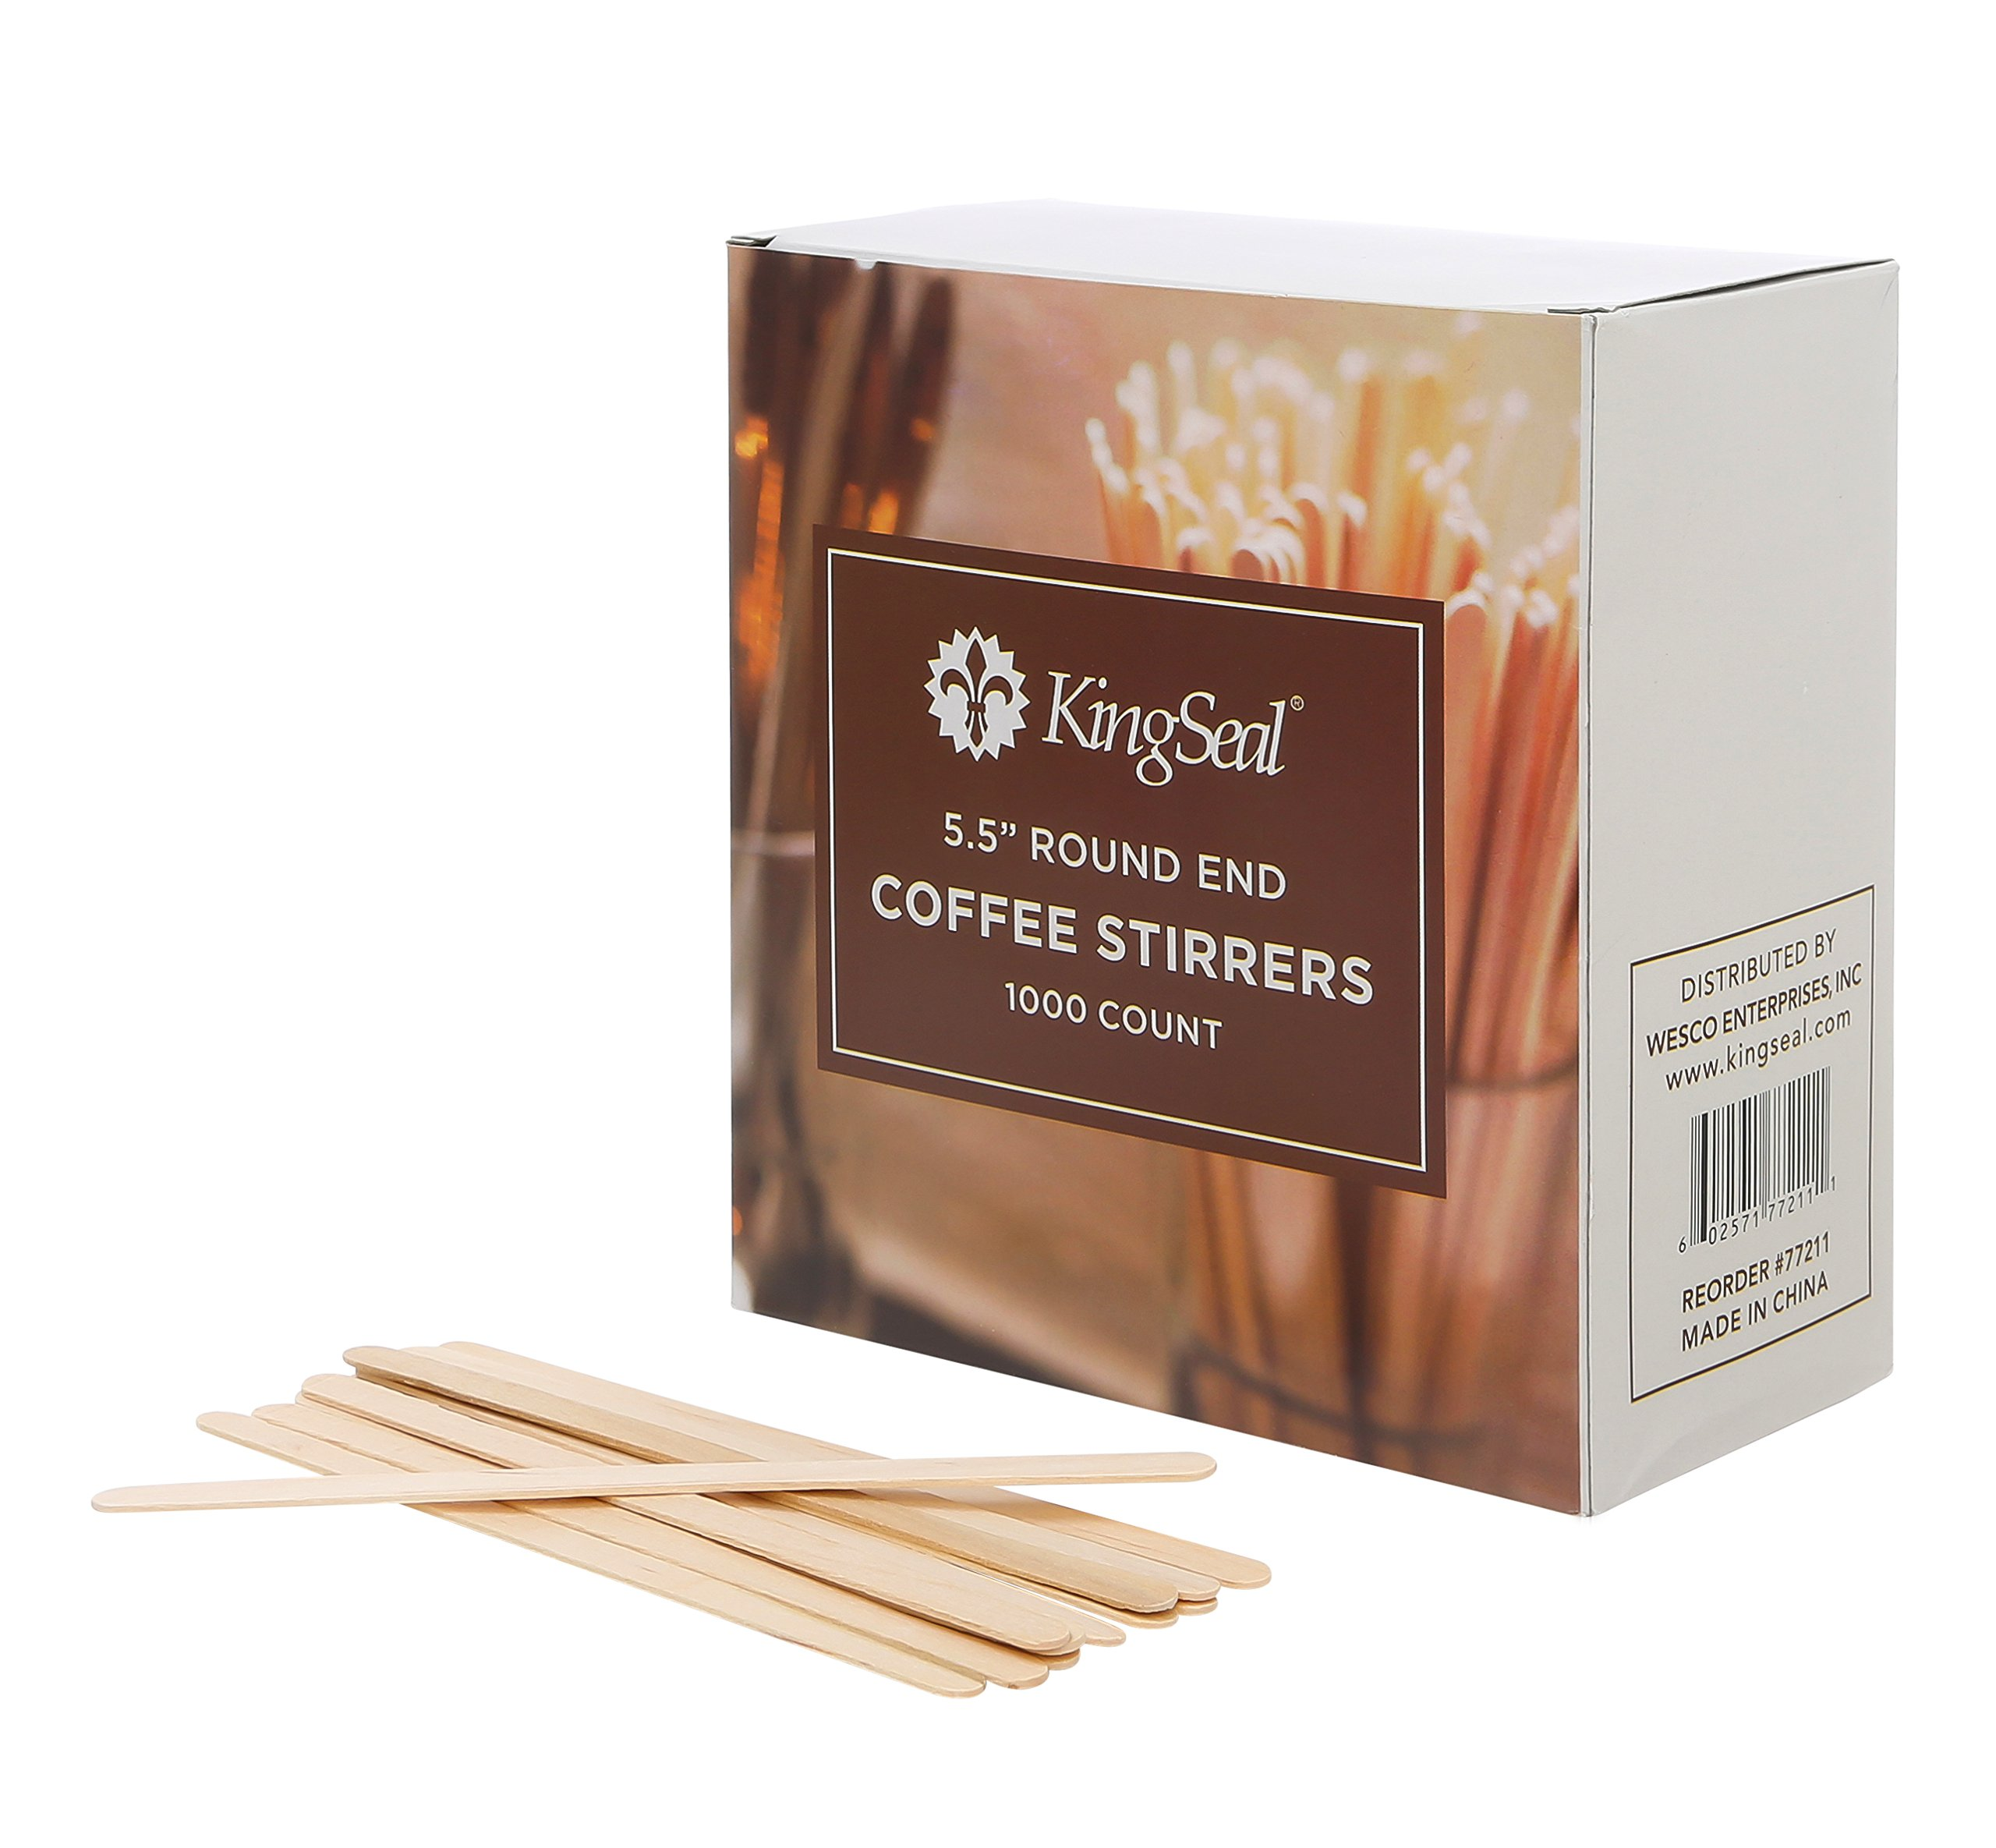 KingSeal Natural Birch Wood Coffee Beverage Stirrers - 5.5 Inches, Round End, 10 Packs of 1000 each per Case